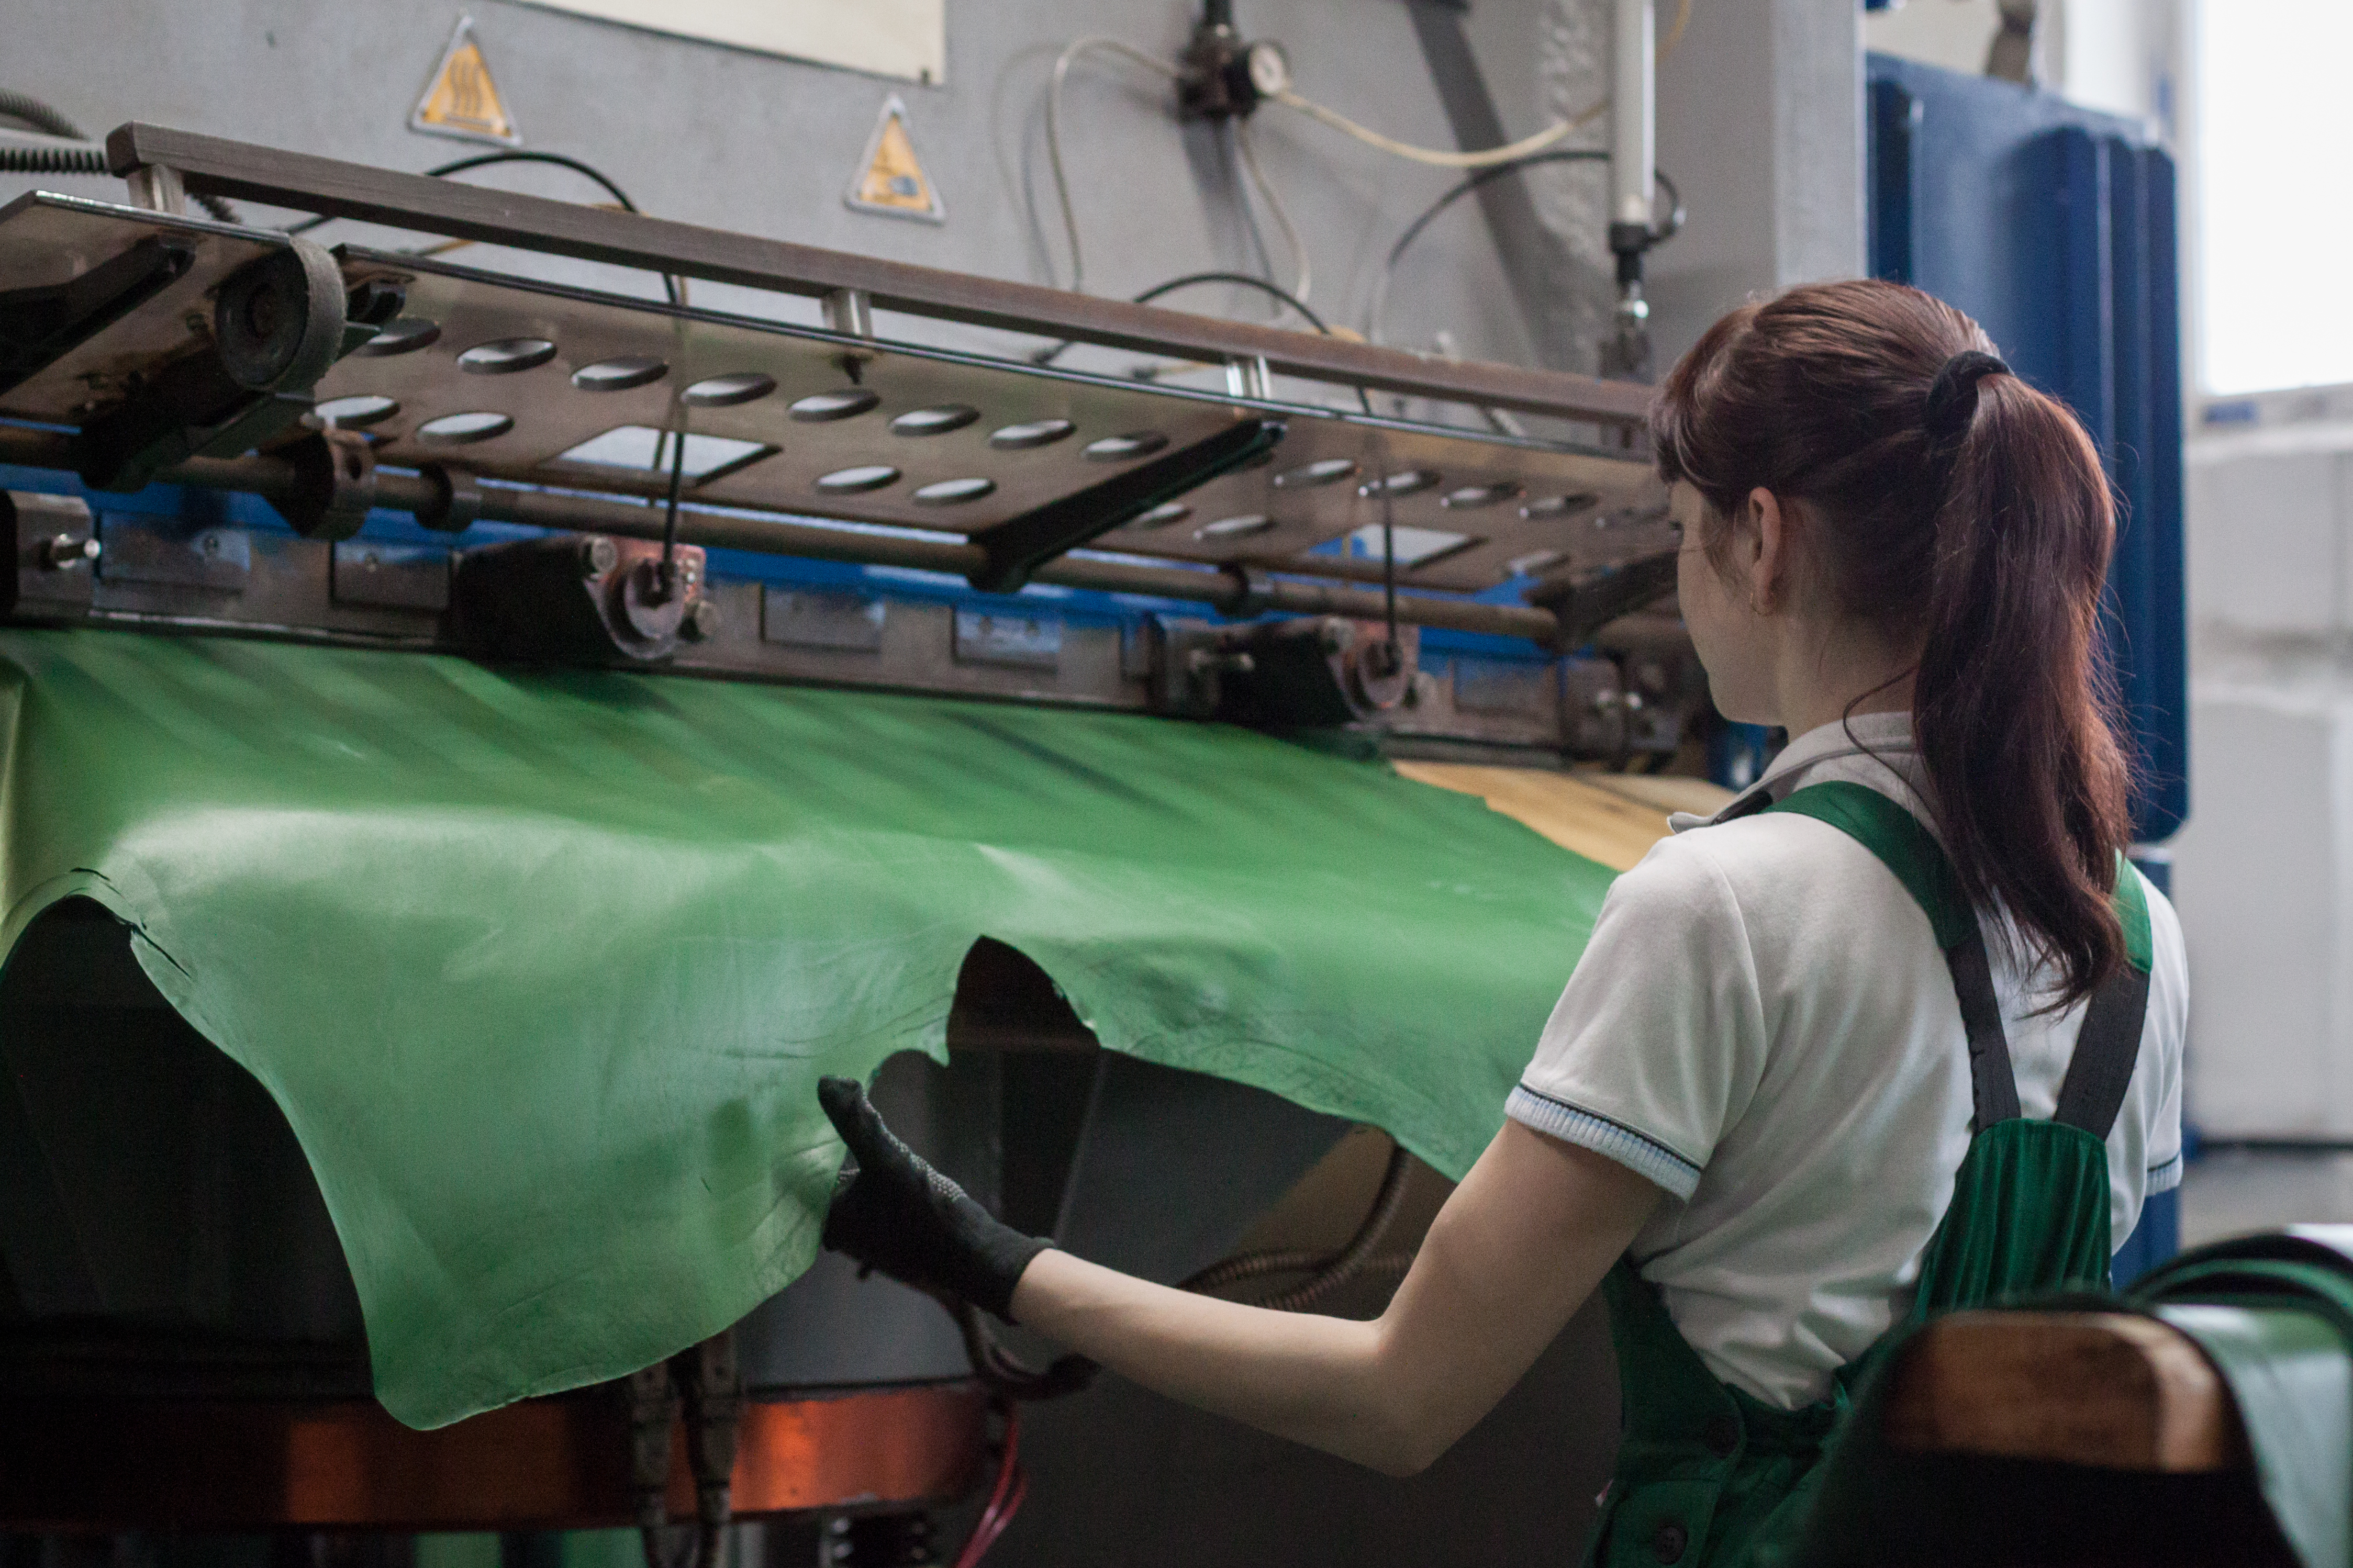 The plant's general director told RBTH that by 2019 the company hopes to capture 11 percent of the Russian market for natural and crust leather, squeezing out foreign suppliers who currently control 22 percent of the market.\n